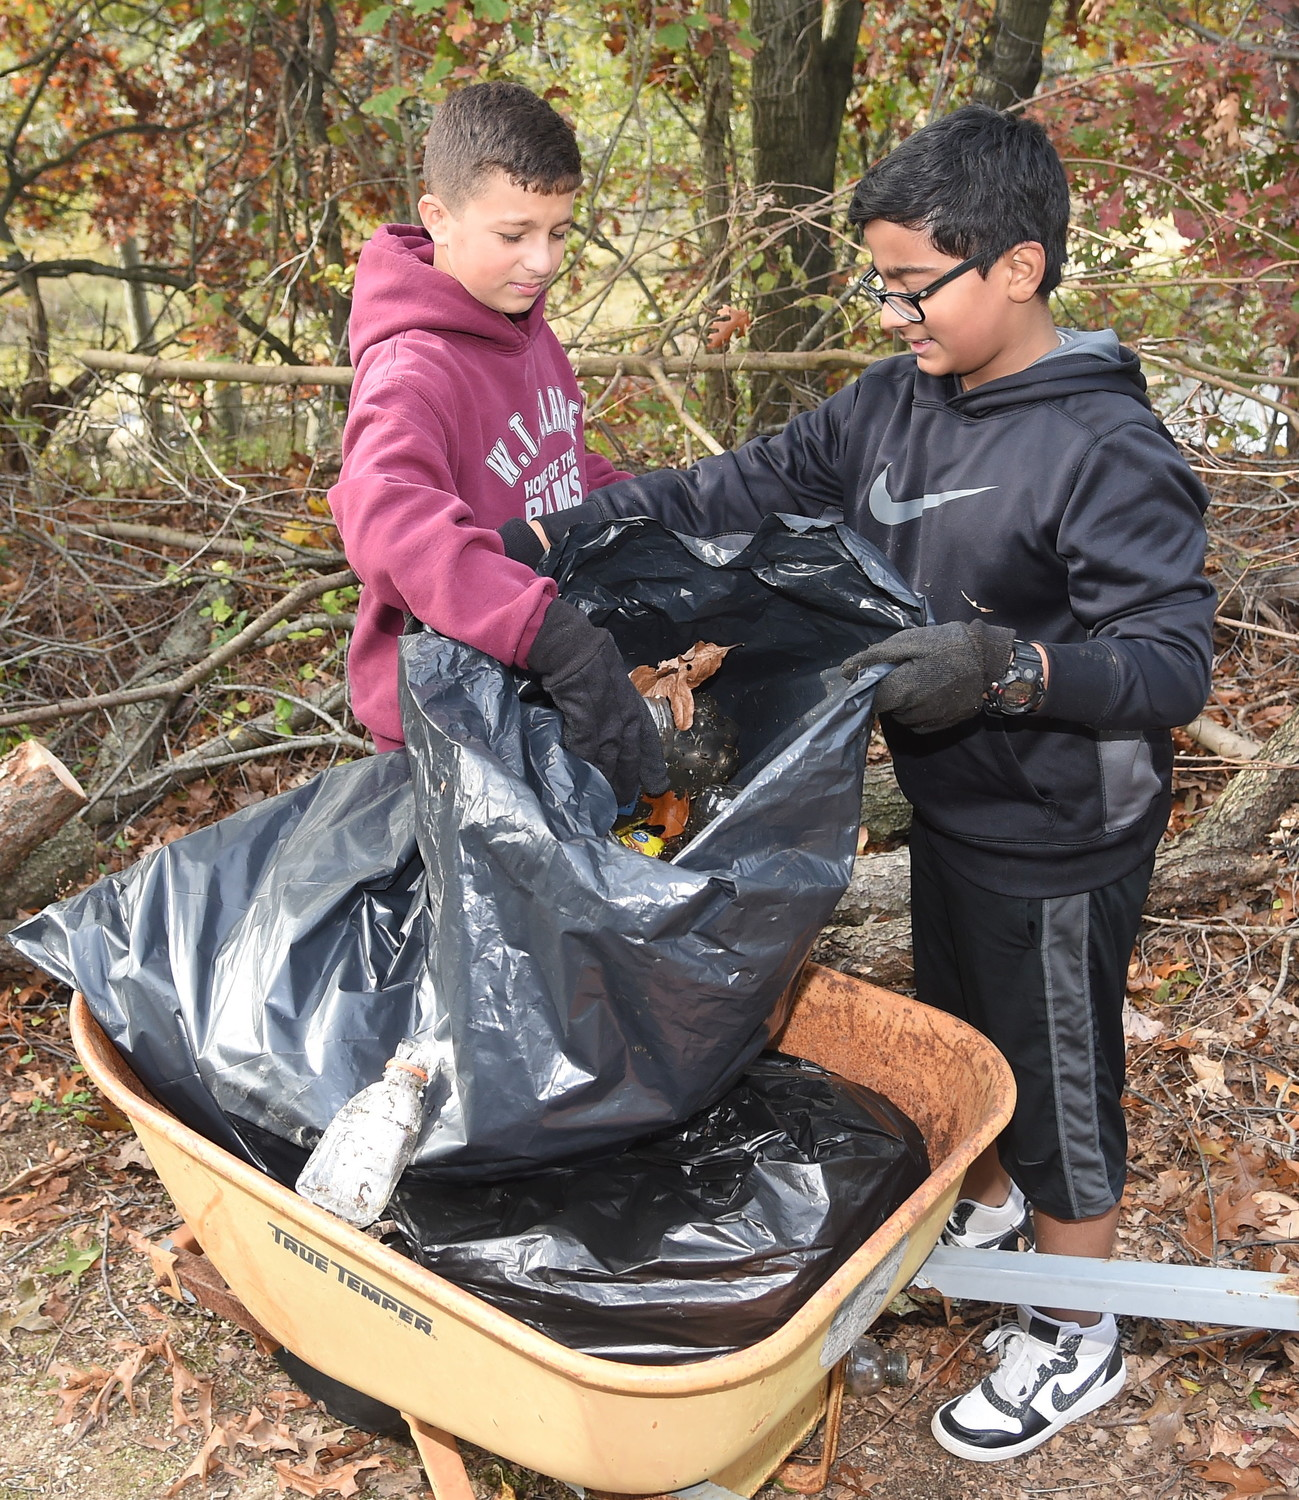 Antonio Palmeri and Sidd Chiguripati used a wheelbarrow to stuff garbage bags to the brim with as much litter as possible.